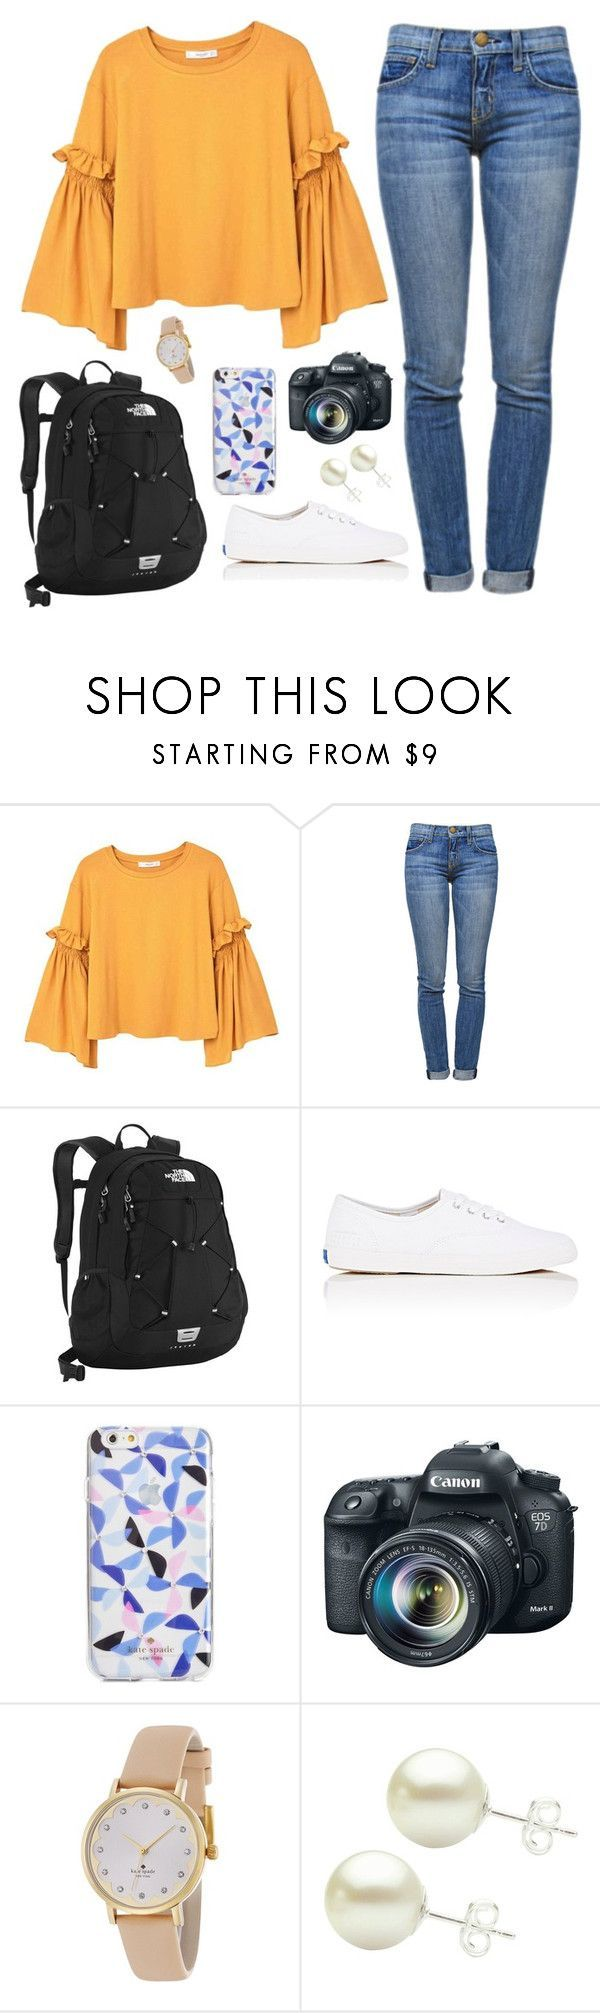 """Too bad there's school tomorrow"" by classygrace ❤ liked on Polyvore featuring MANGO, Current/Elliott, The North Face, Keds, Kate Spade and Eos"